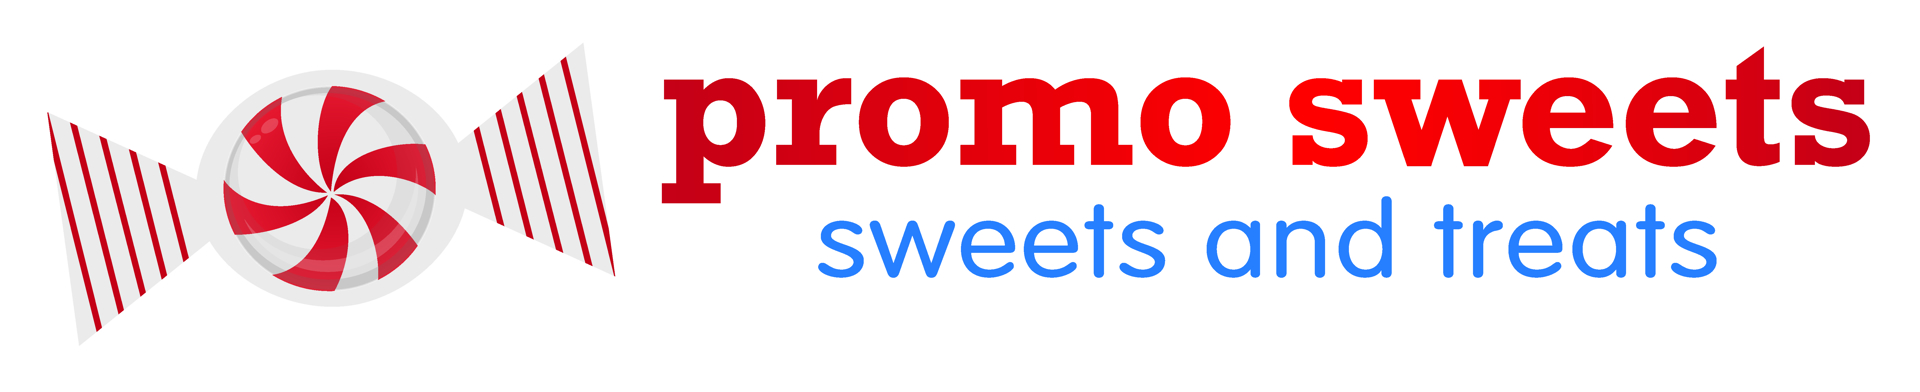 Promo Sweets